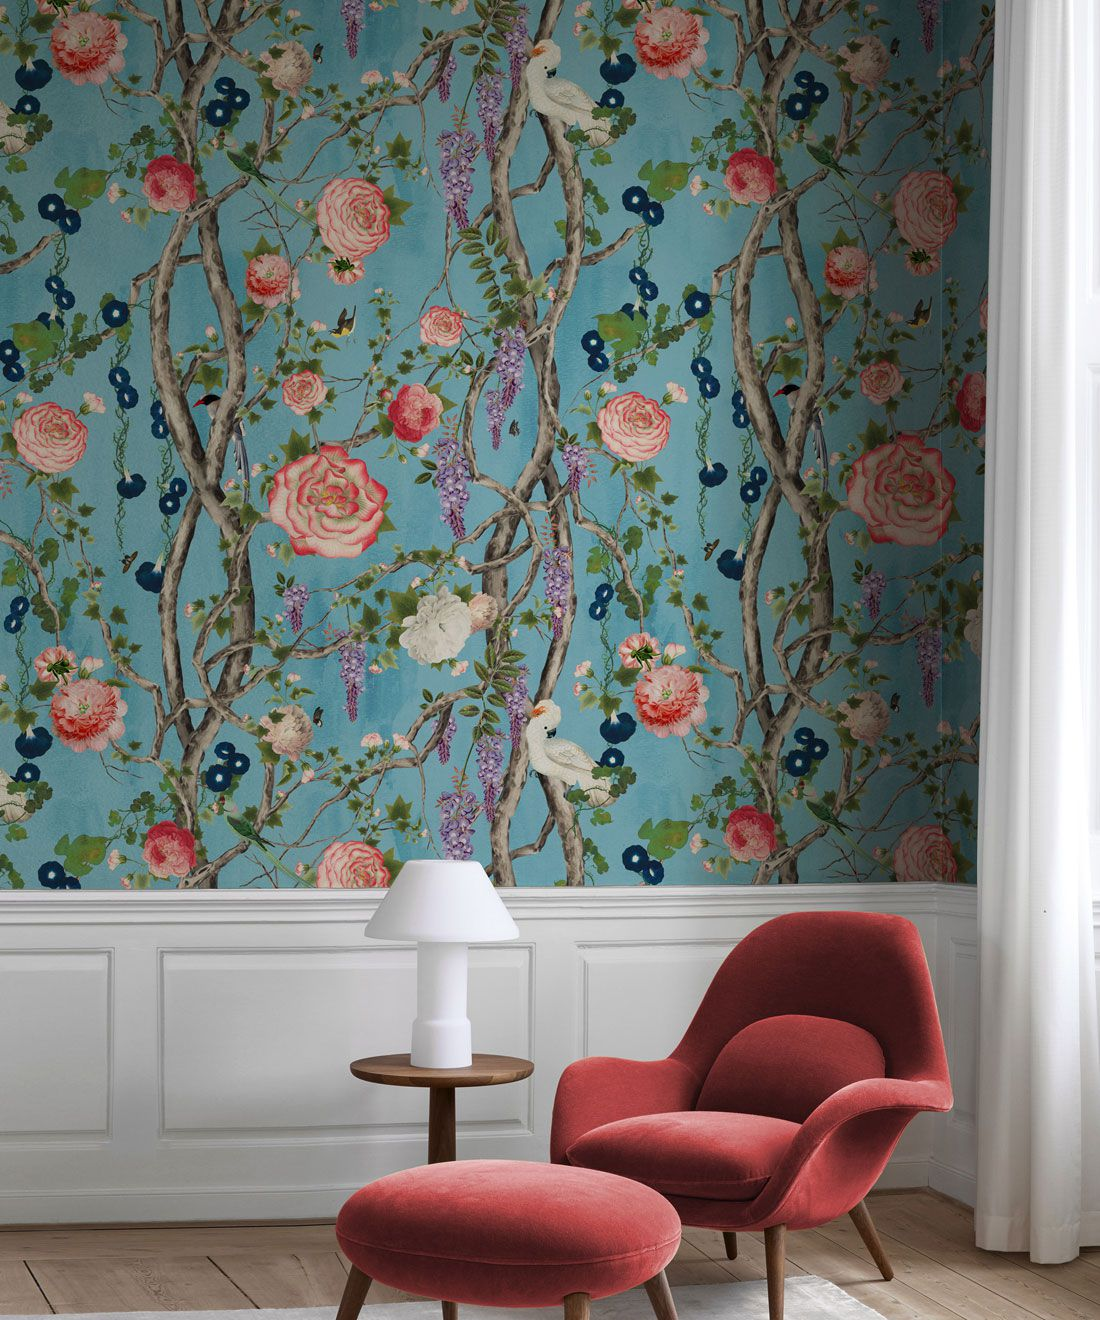 Empress Wallpaper • Romantic Wallpaper • Floral Wallpaper • Chinoiserie Wallpaper • Light Blue color wallpaper insitu • Sky